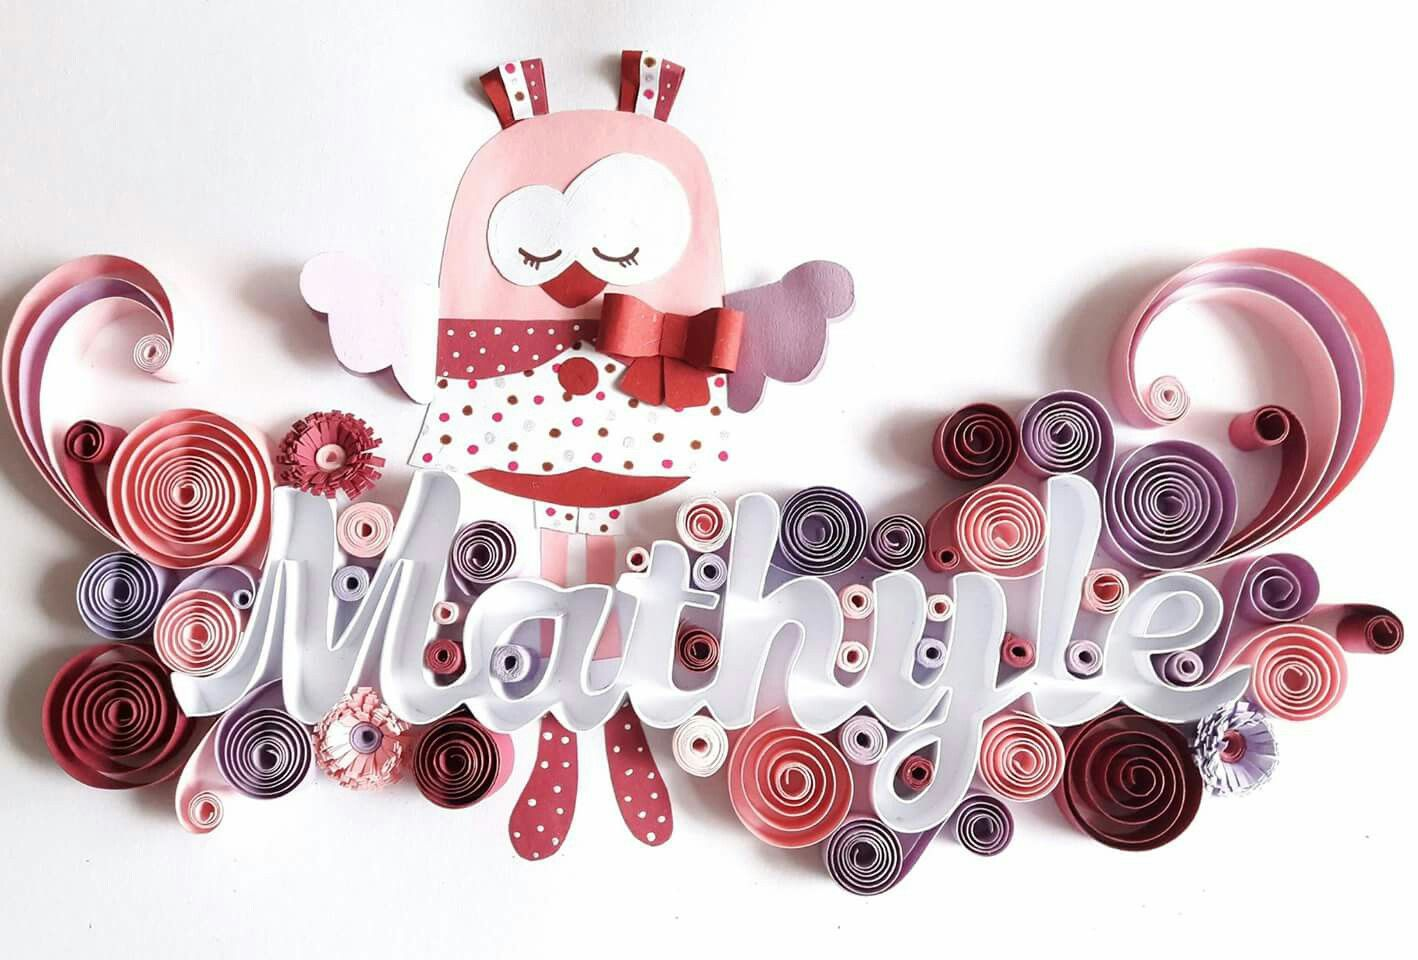 Pin by fernanda naresse on quilling pinterest quilling and paper quilling art projects letters paper quilling kid art crafts letter lettering quilts altavistaventures Gallery